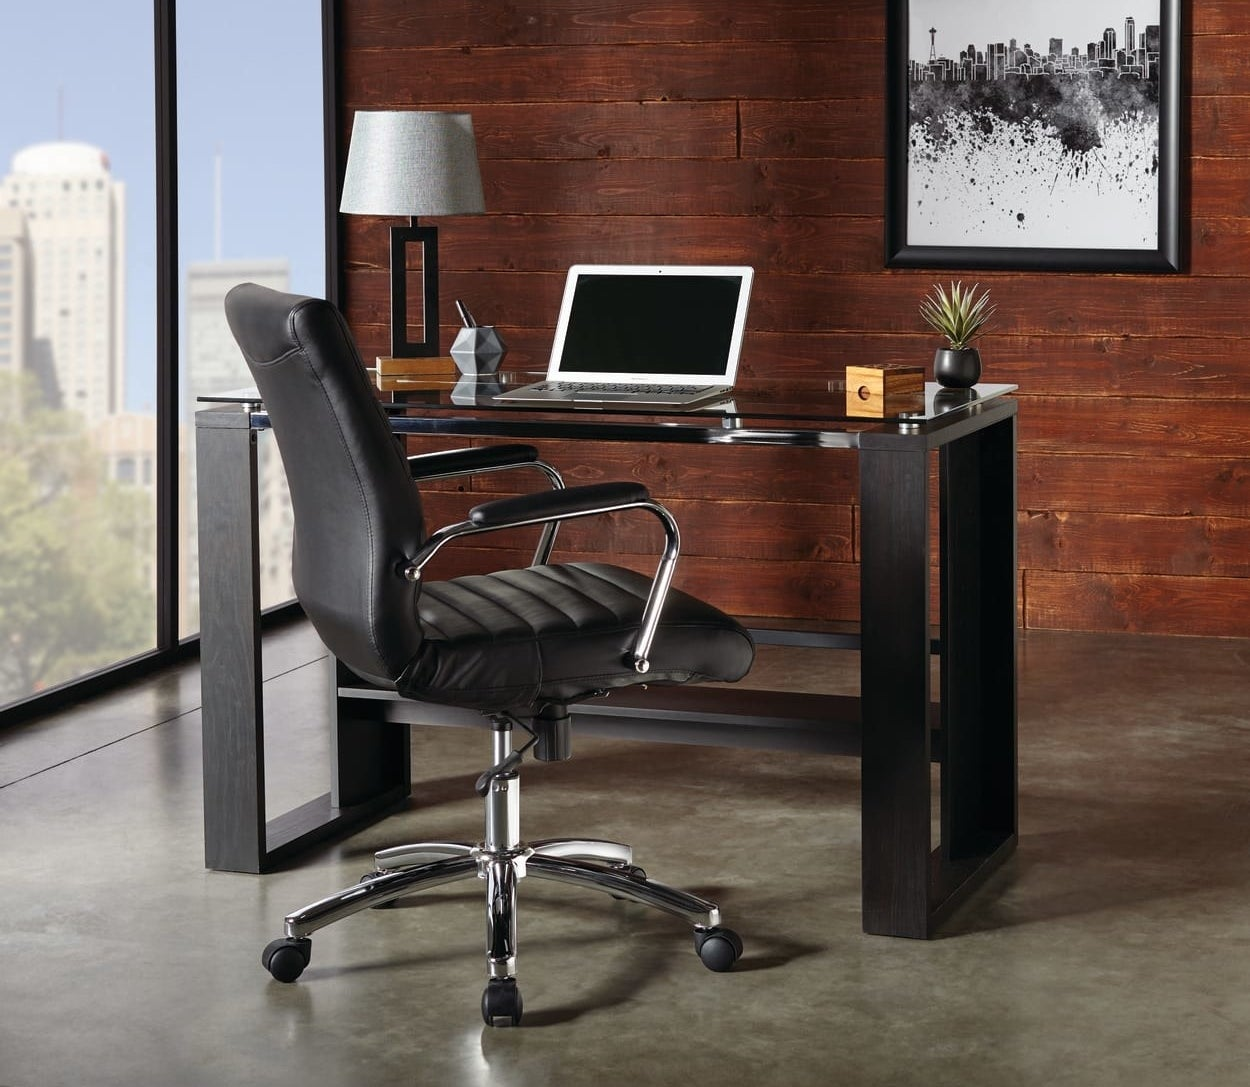 a black supportive office chair on wheels